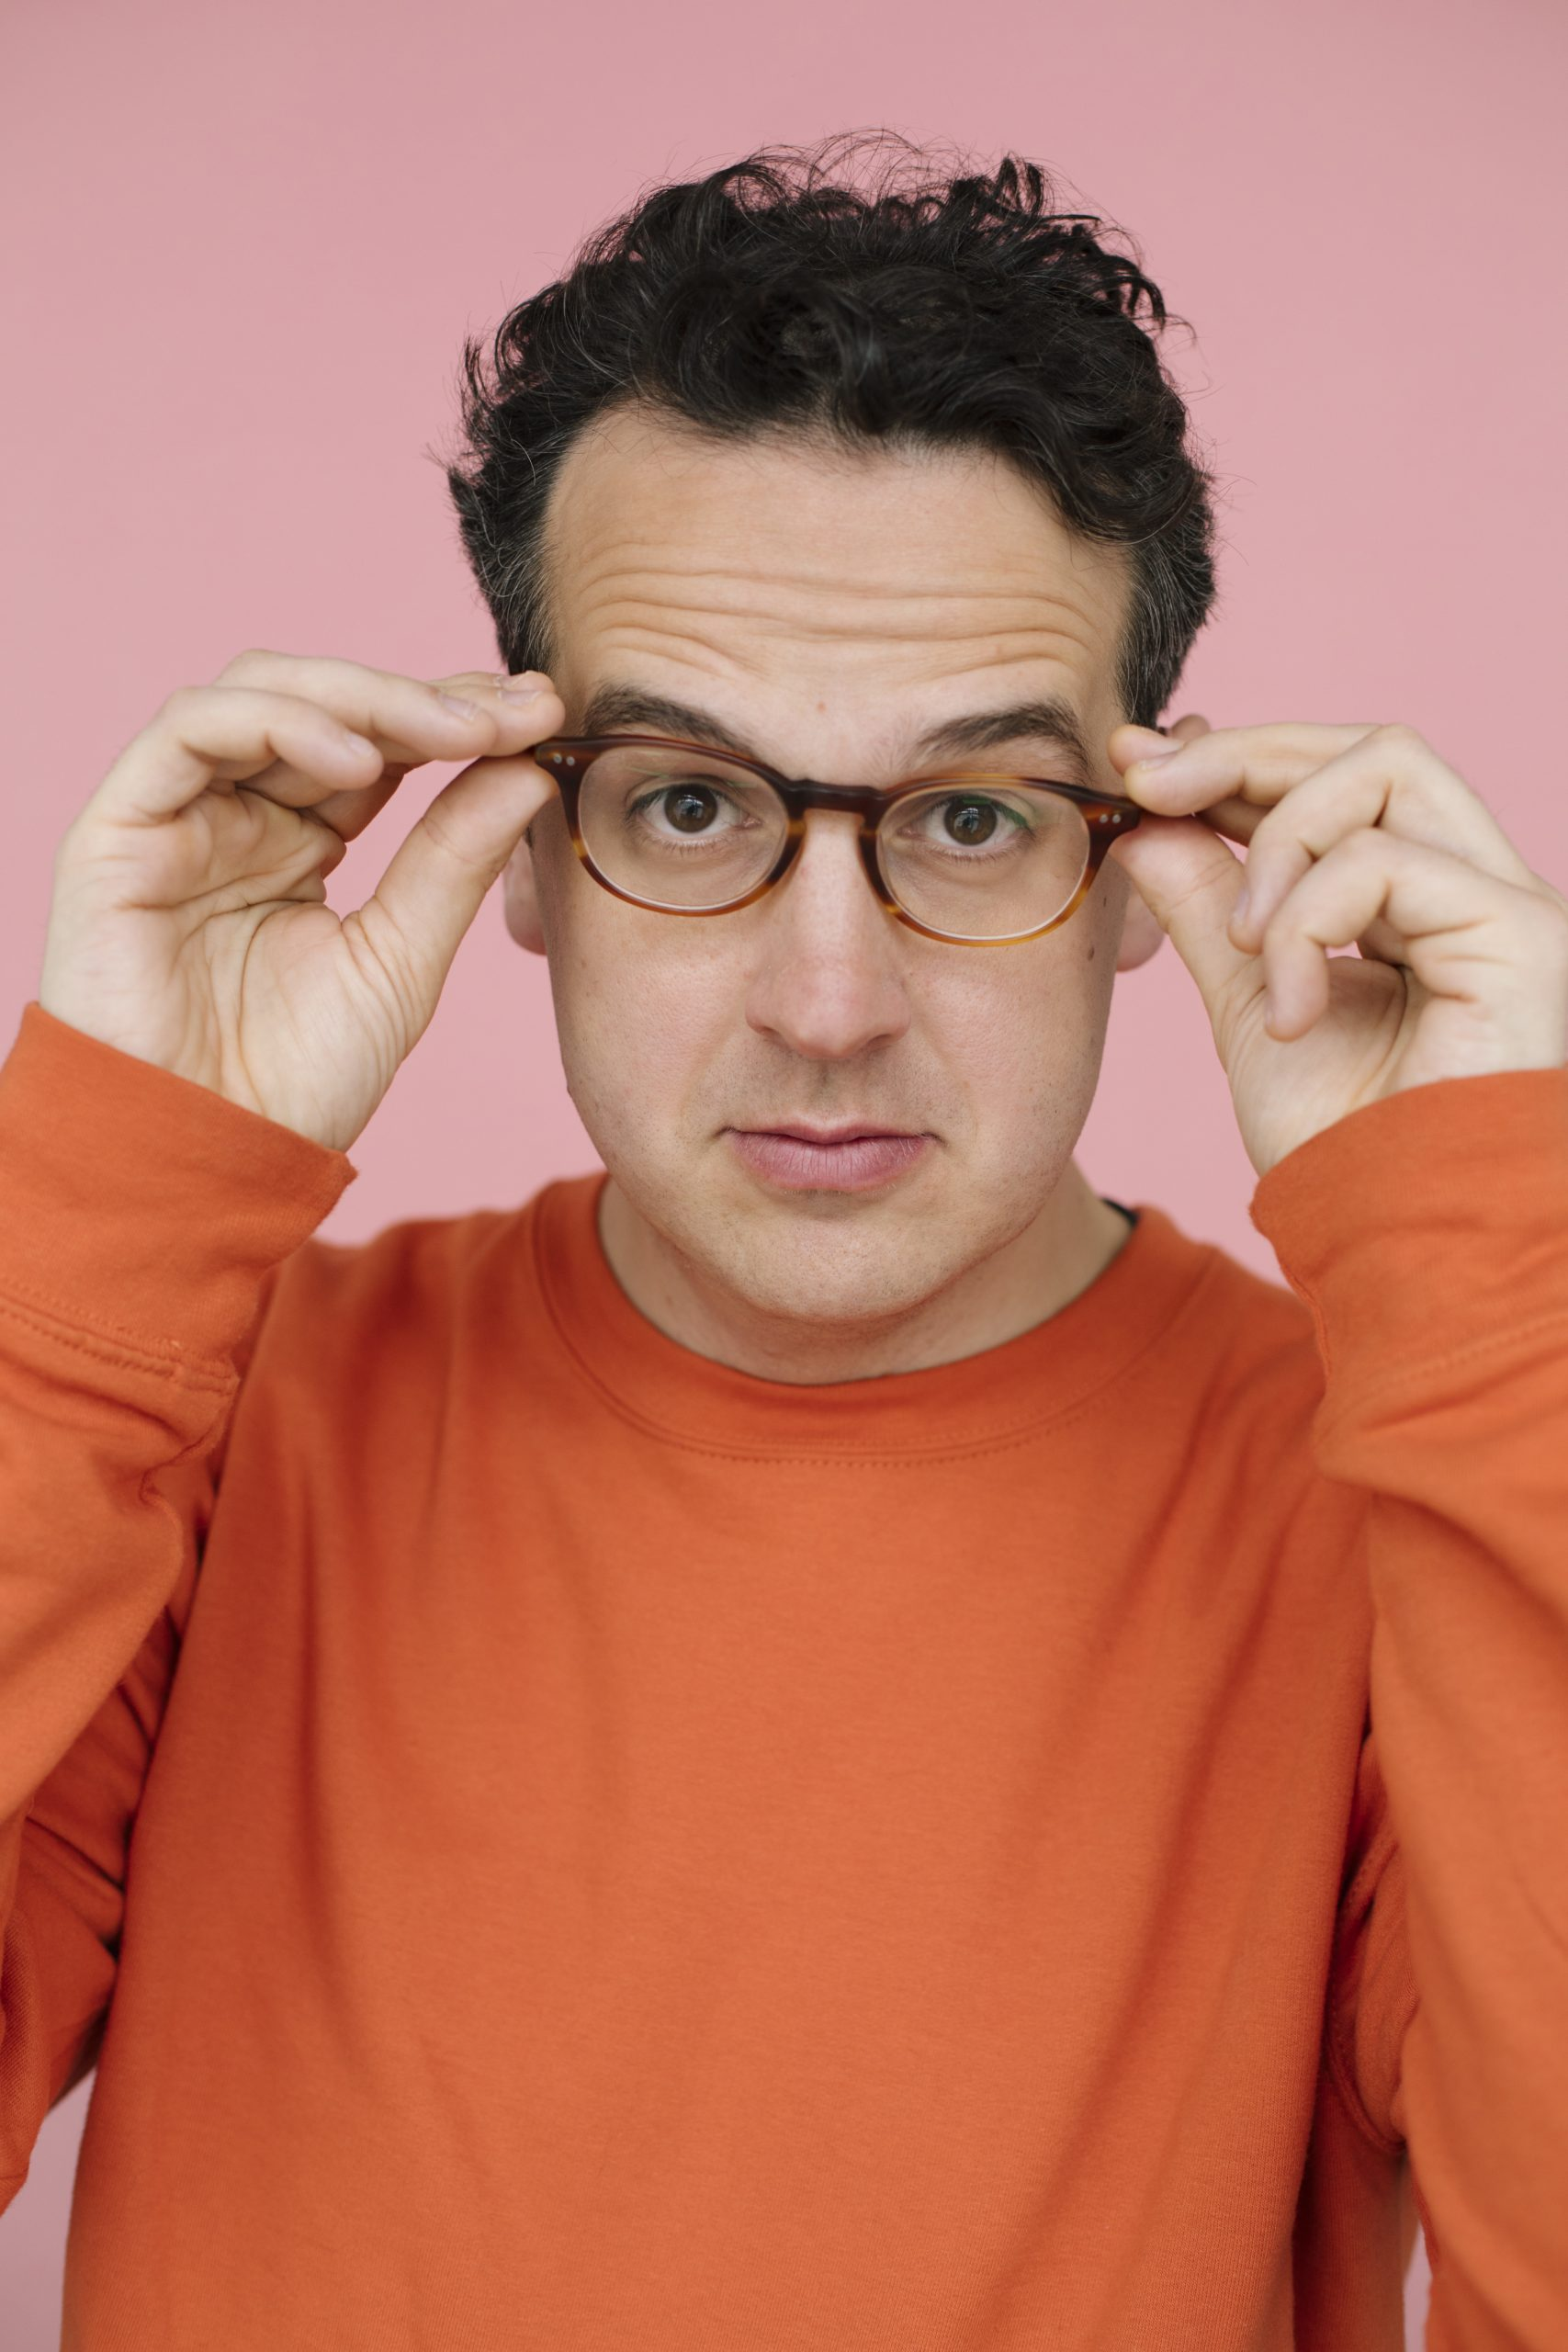 a man with glasses, posing